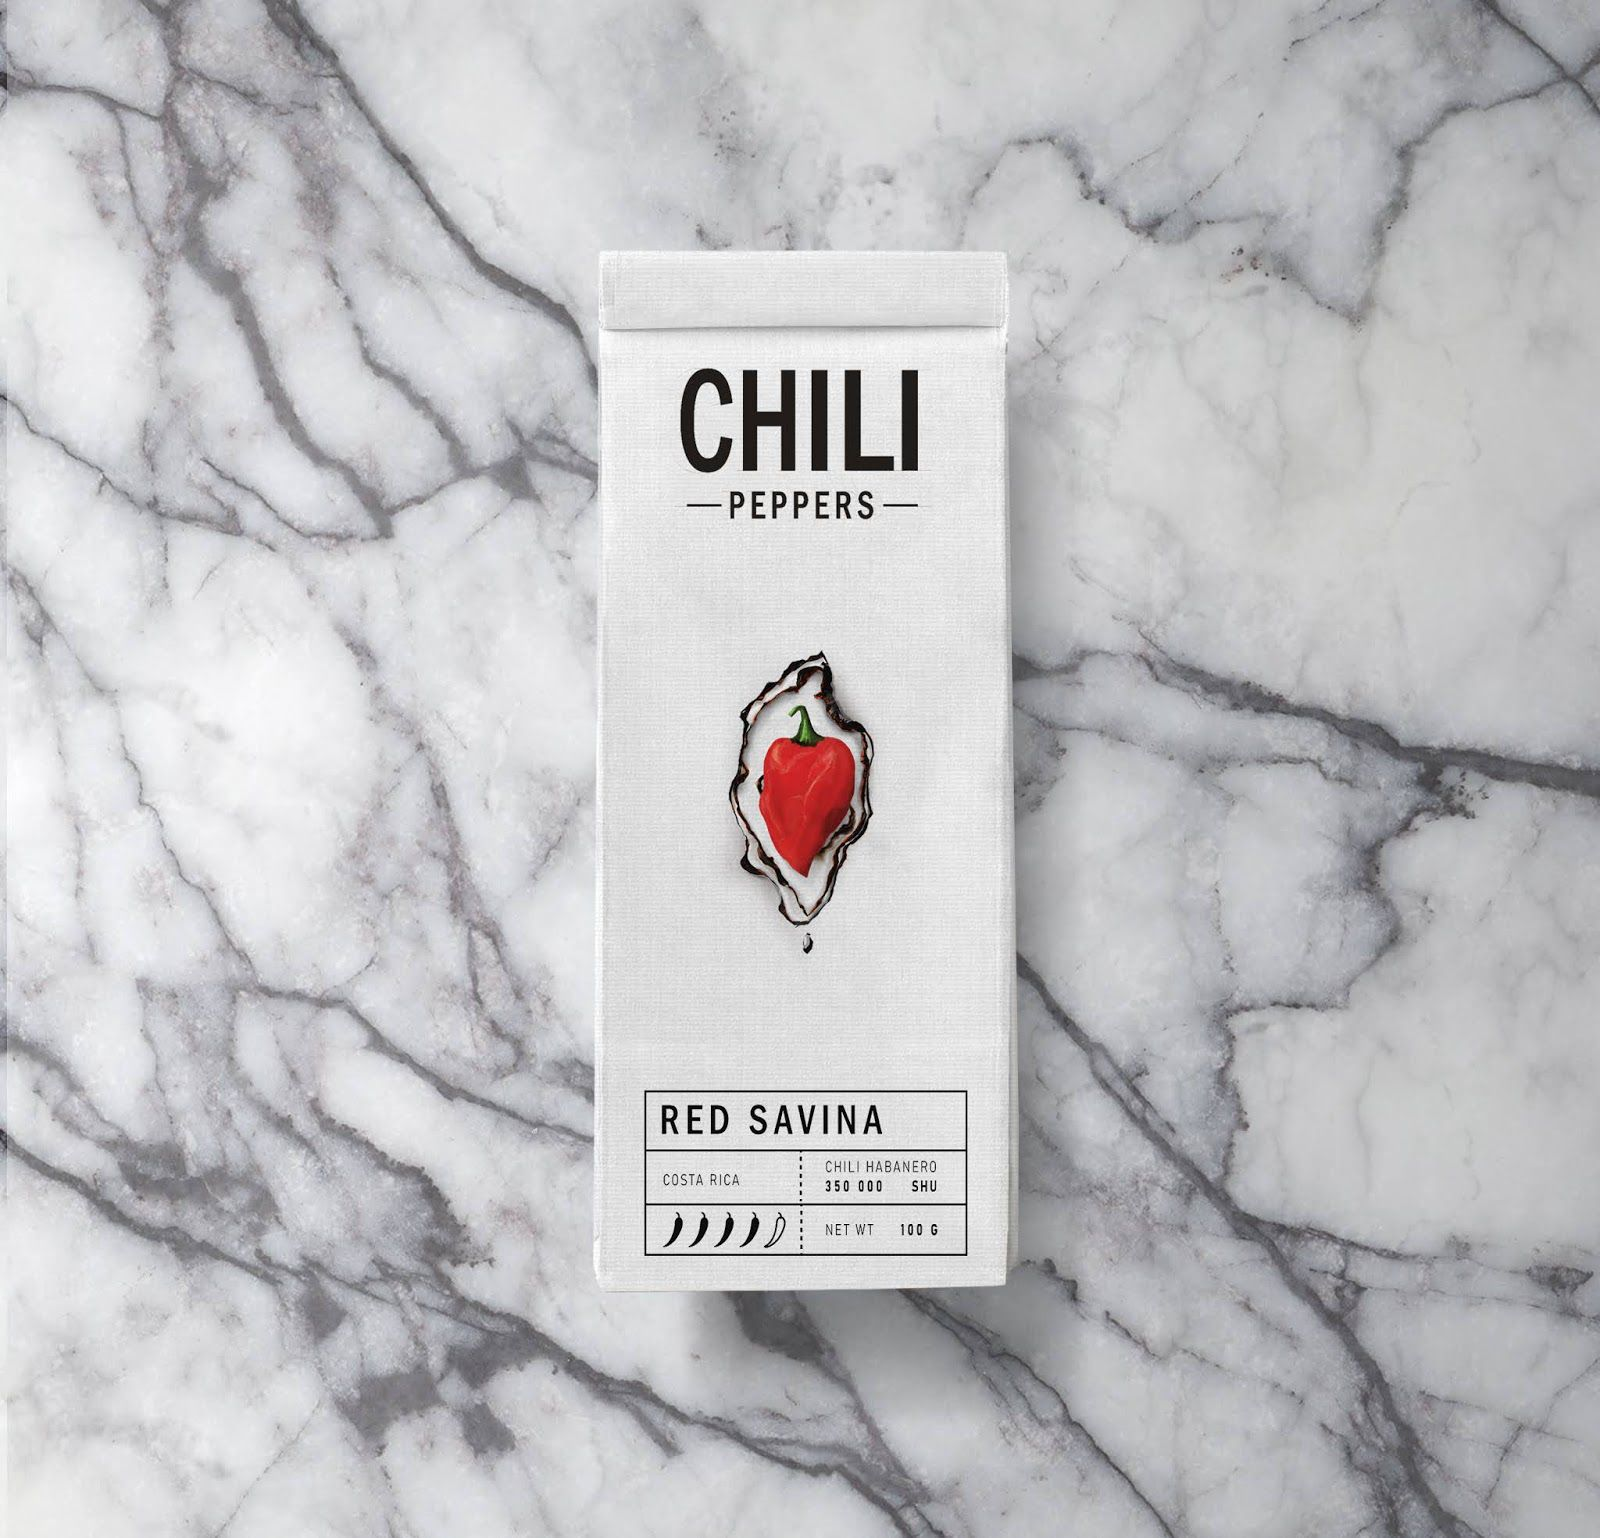 Chilli peppers (gamme de piments)  I Design (concept) : Anabom, Russie (octobre 2020)